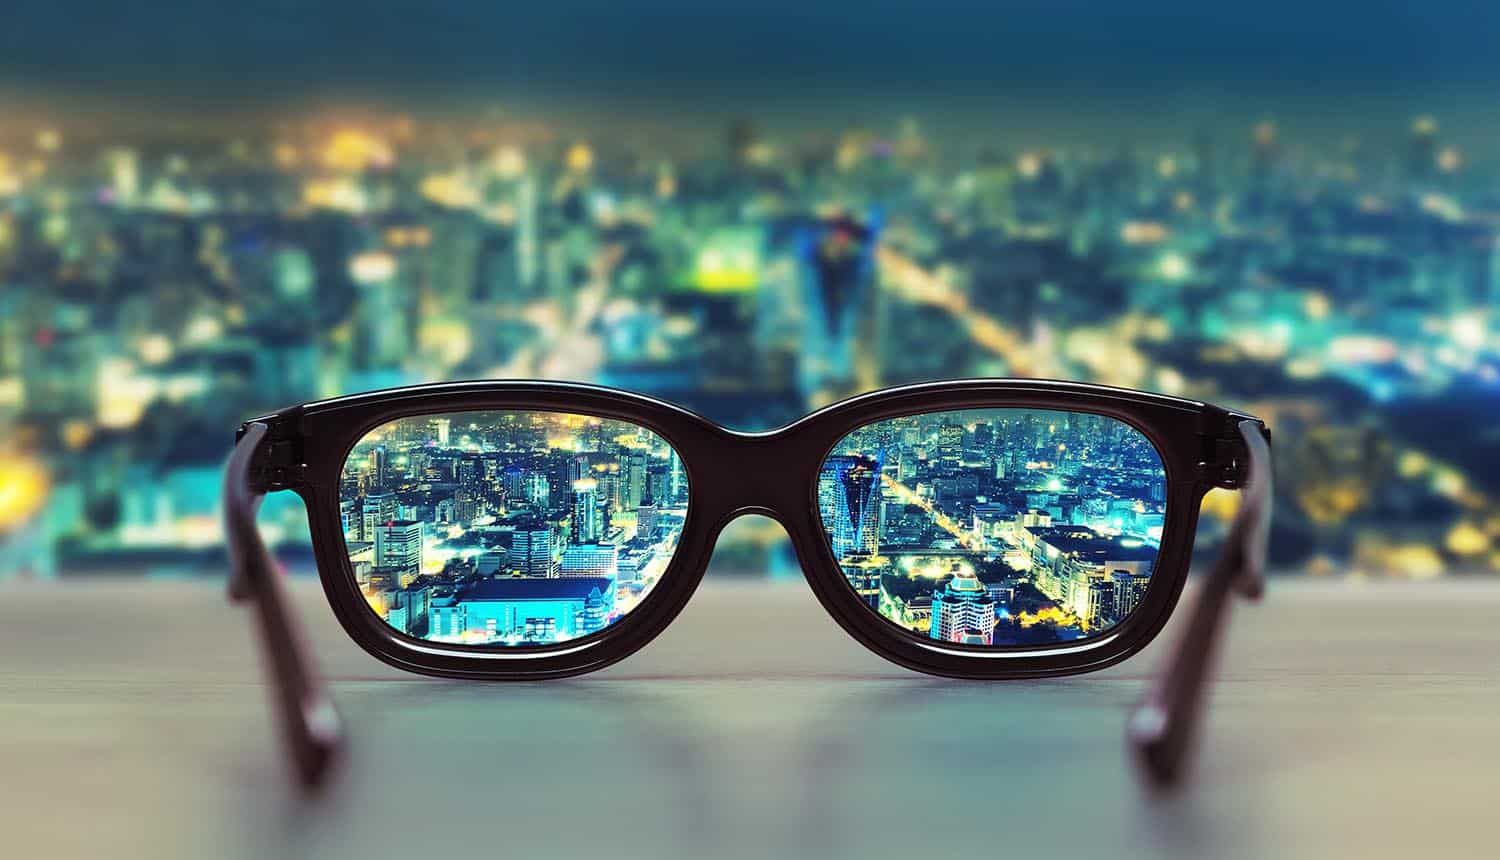 Night cityscape focused in glasses showing Facebook smart glasses